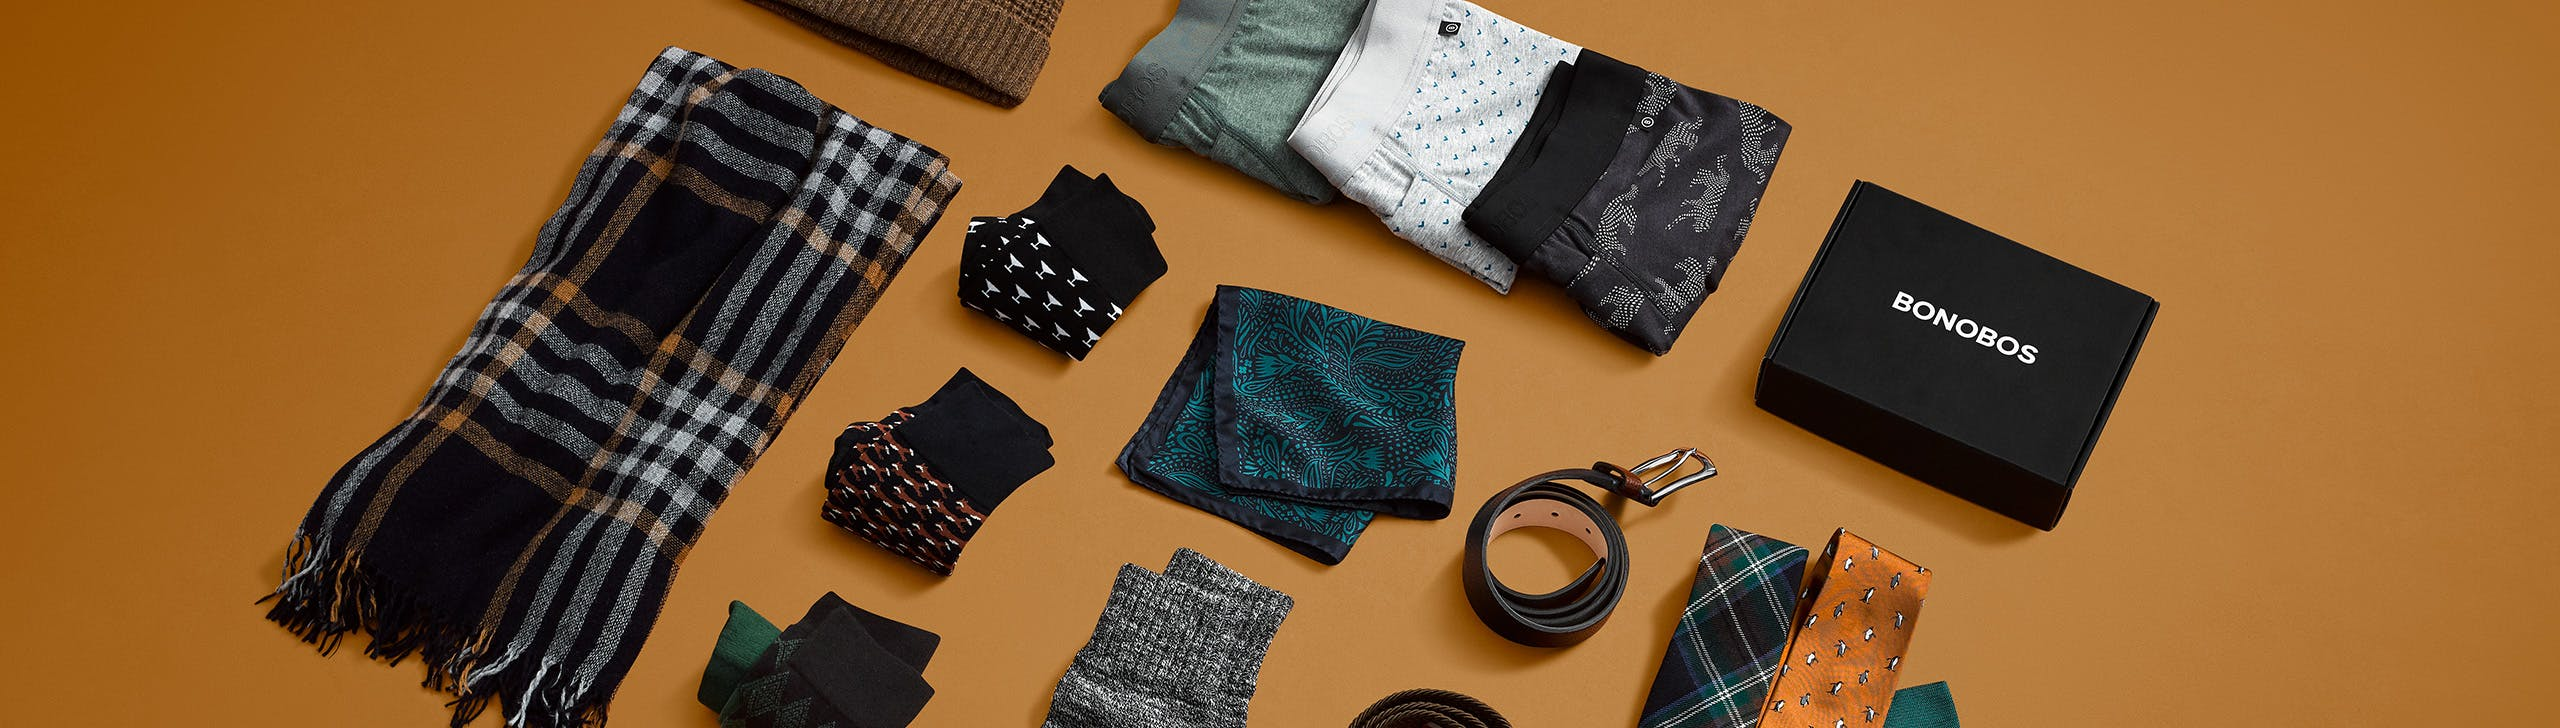 Header showing products for the Hats, Gloves, & Scarves category